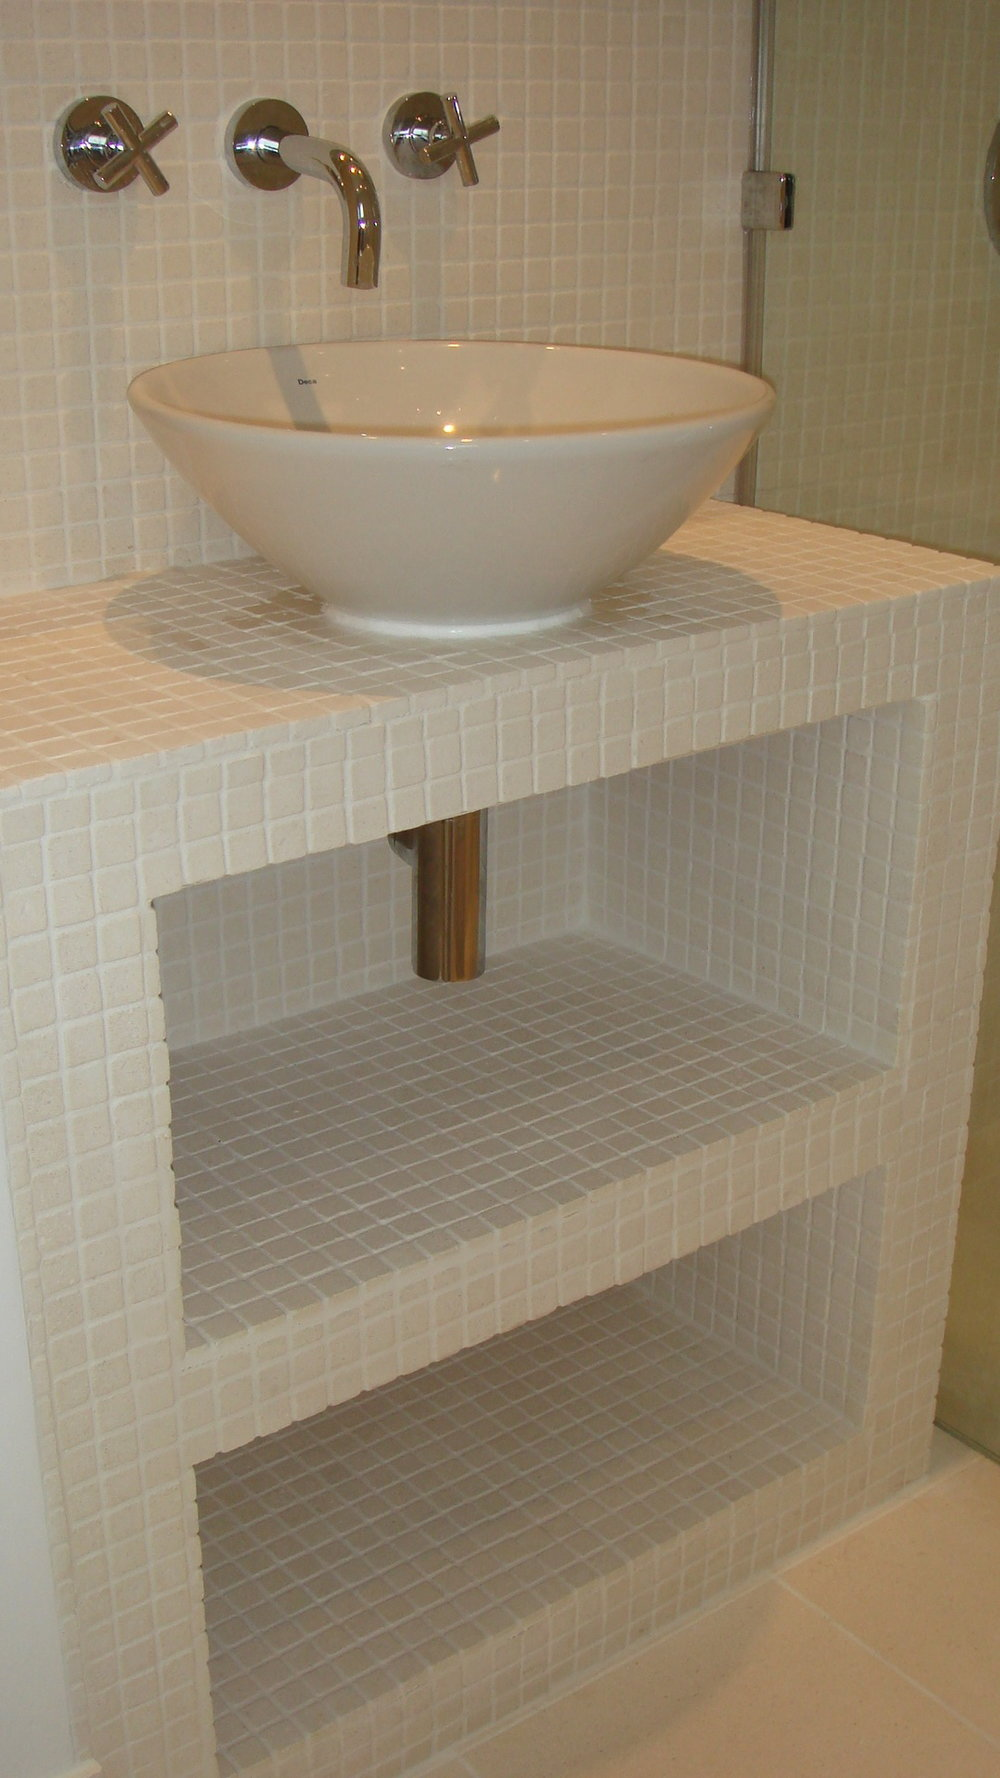 wetroom-01.jpg